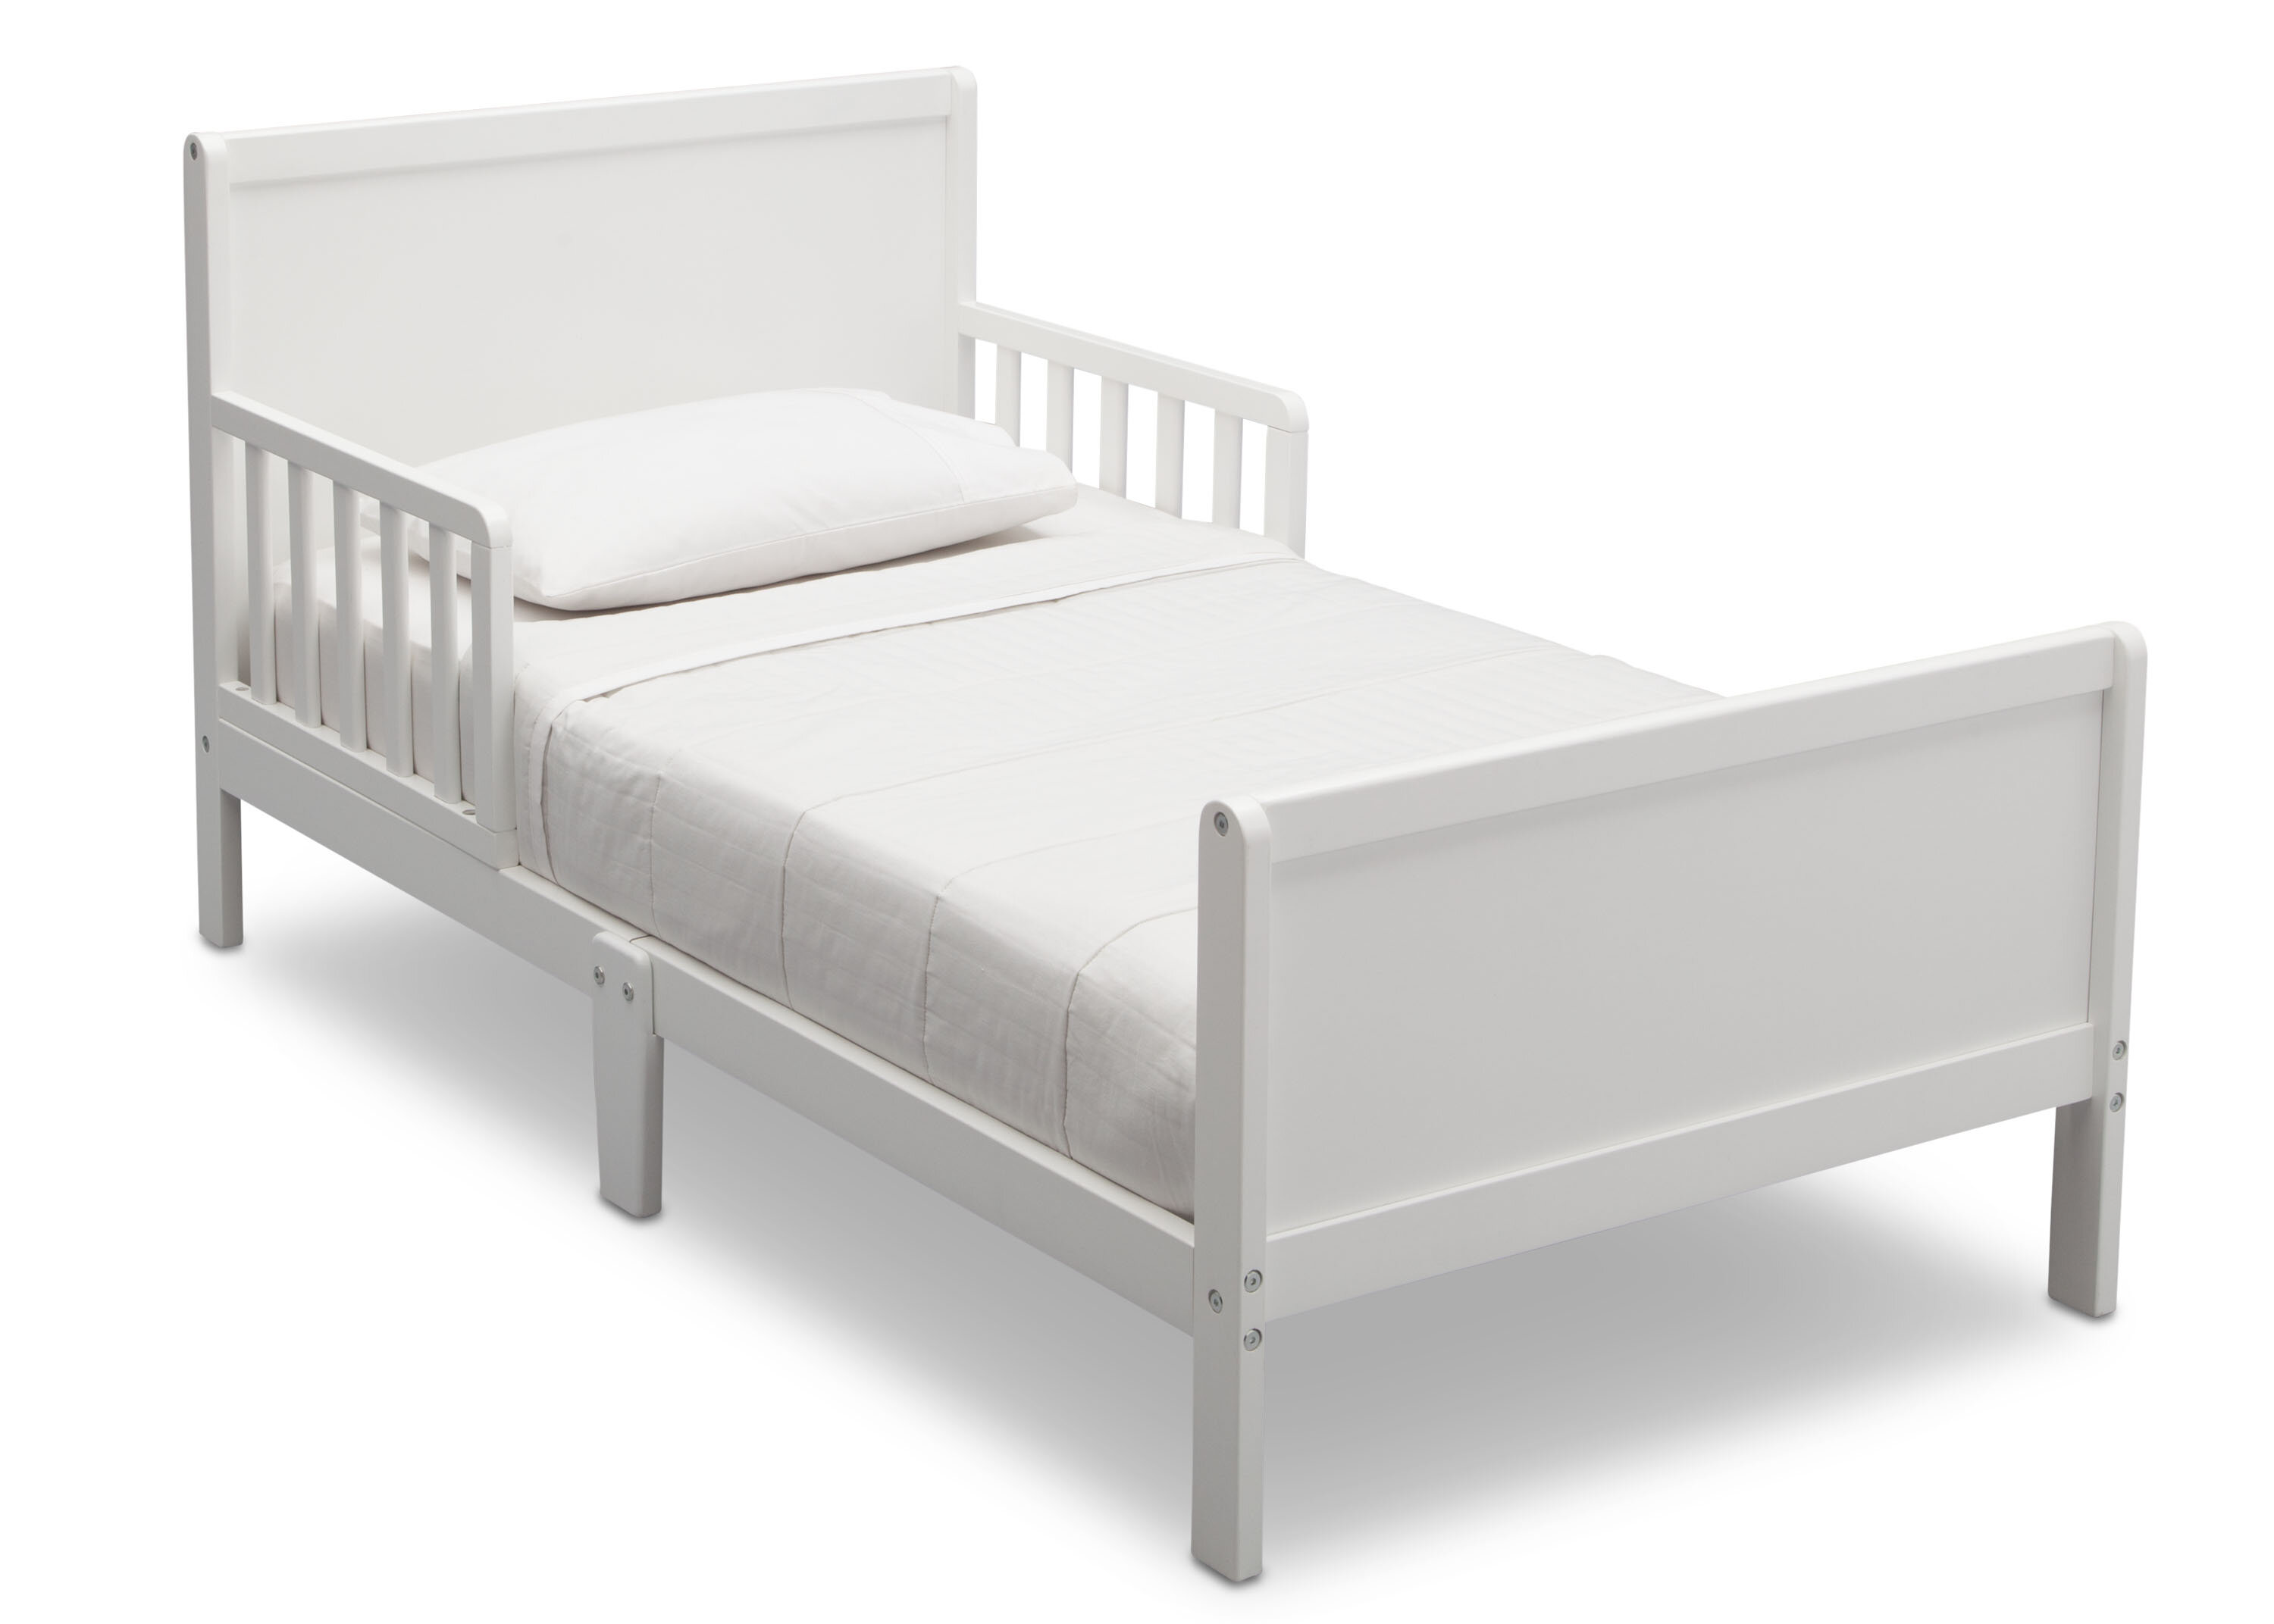 wayfair toddler bed delta children fancy toddler bed amp reviews wayfair 13802